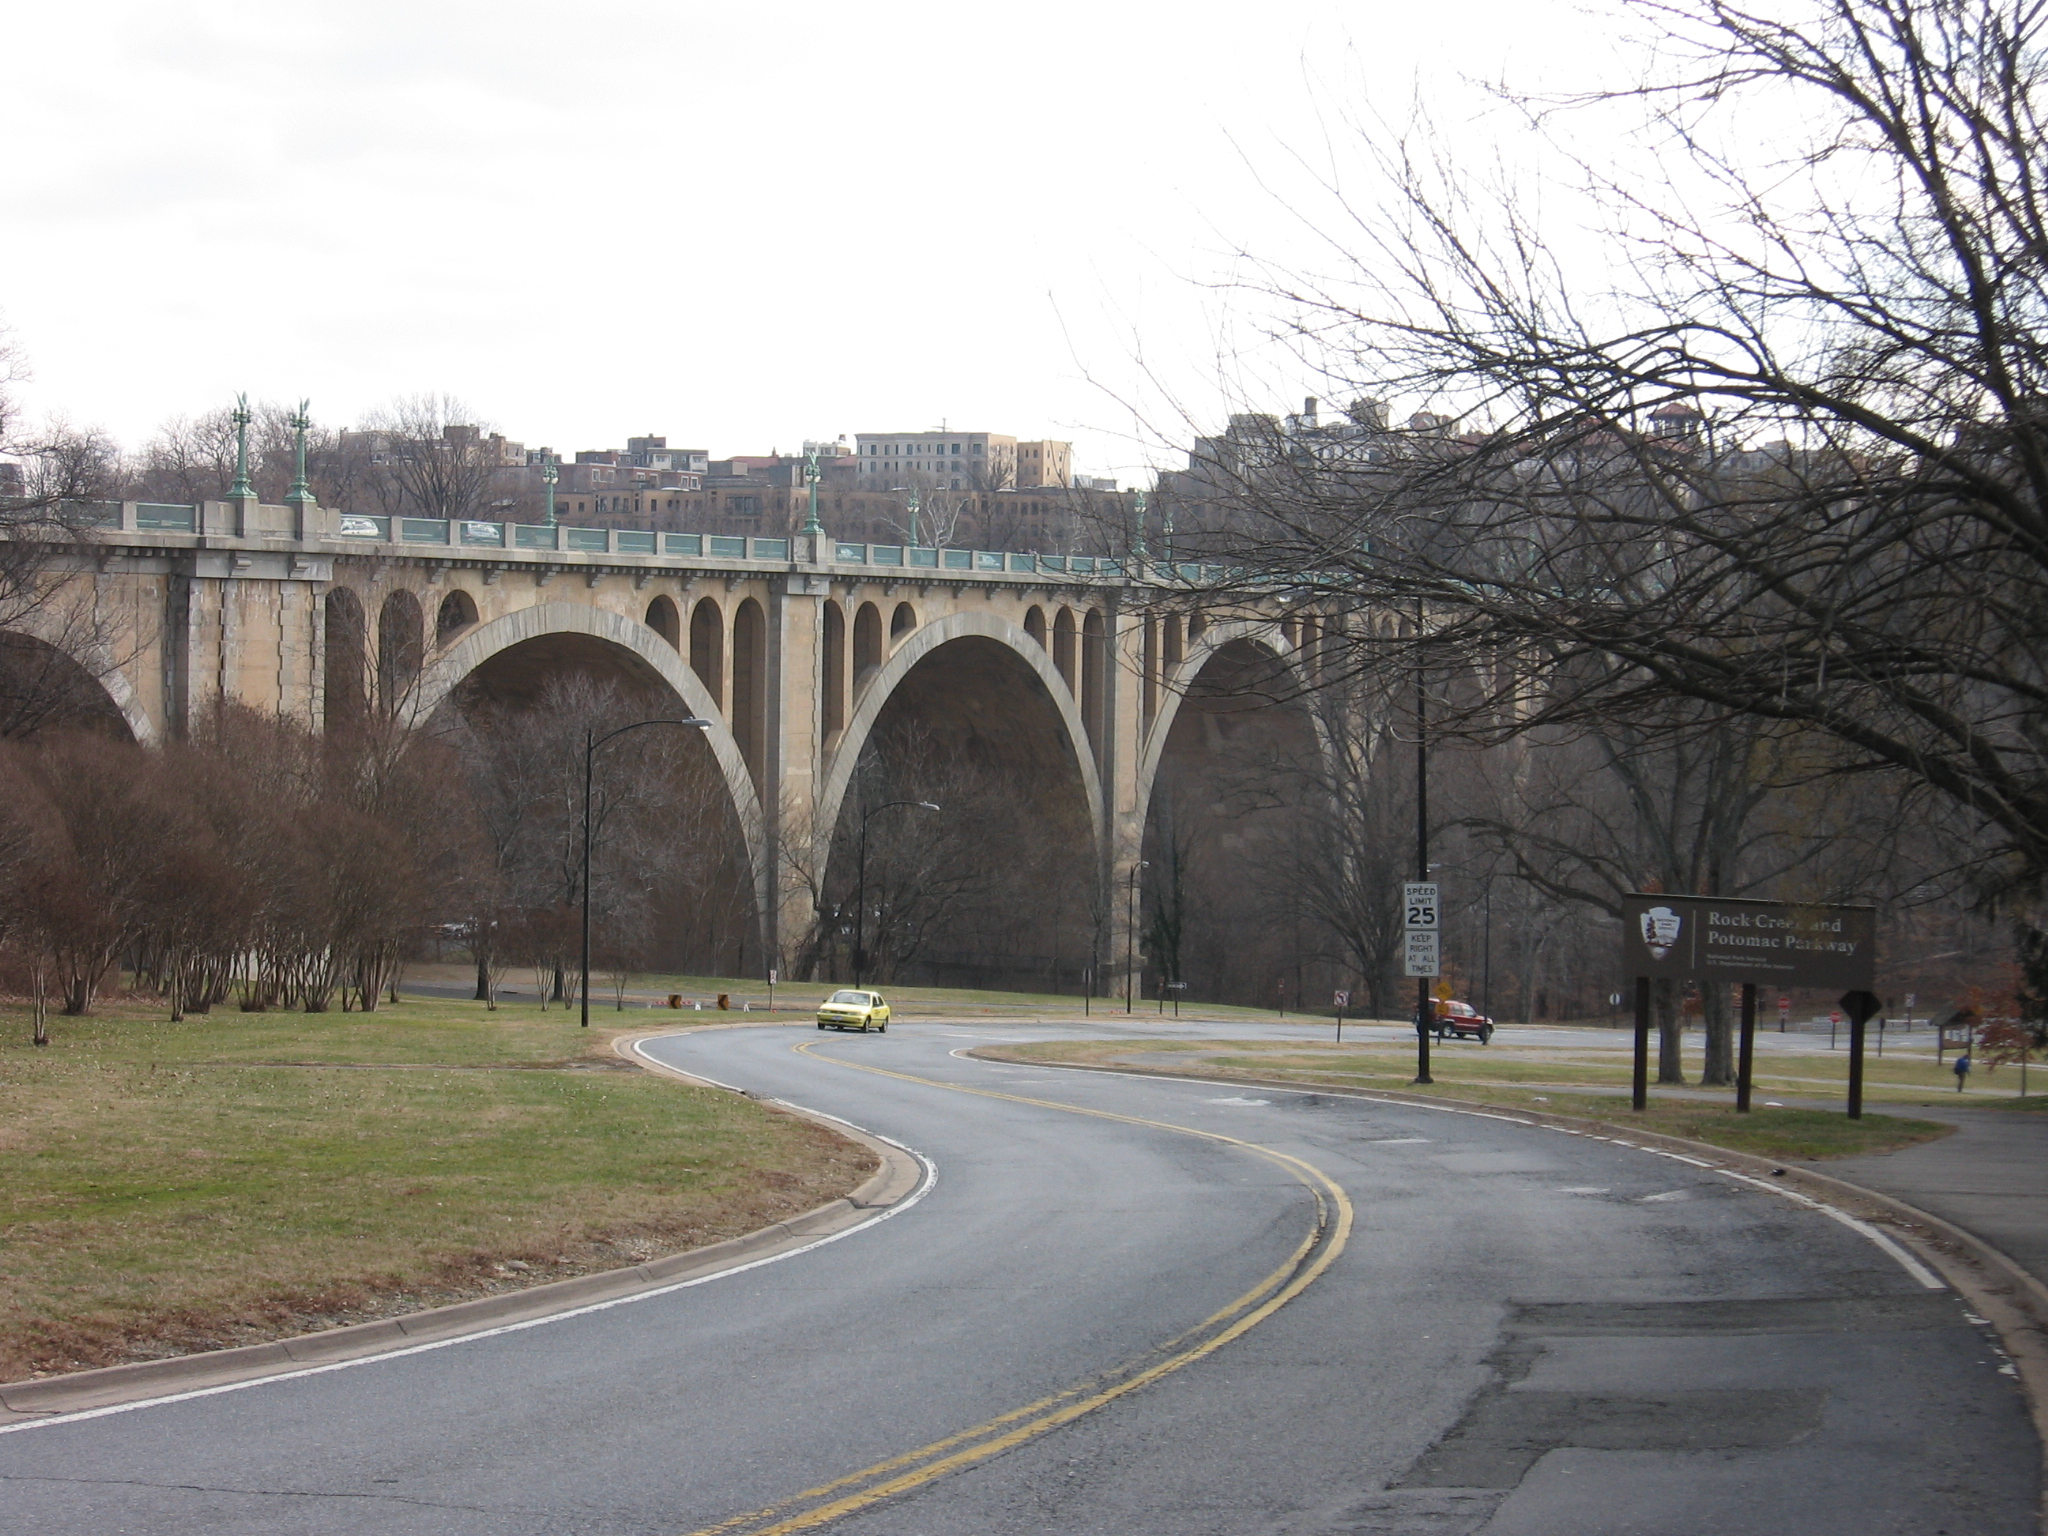 The Taft Bridge connects two neighborhoods separated by Rock Creek Park. Its arches are reminiscent of a Roman aqueduct. Photo by Michiel1972, Wikimedia.